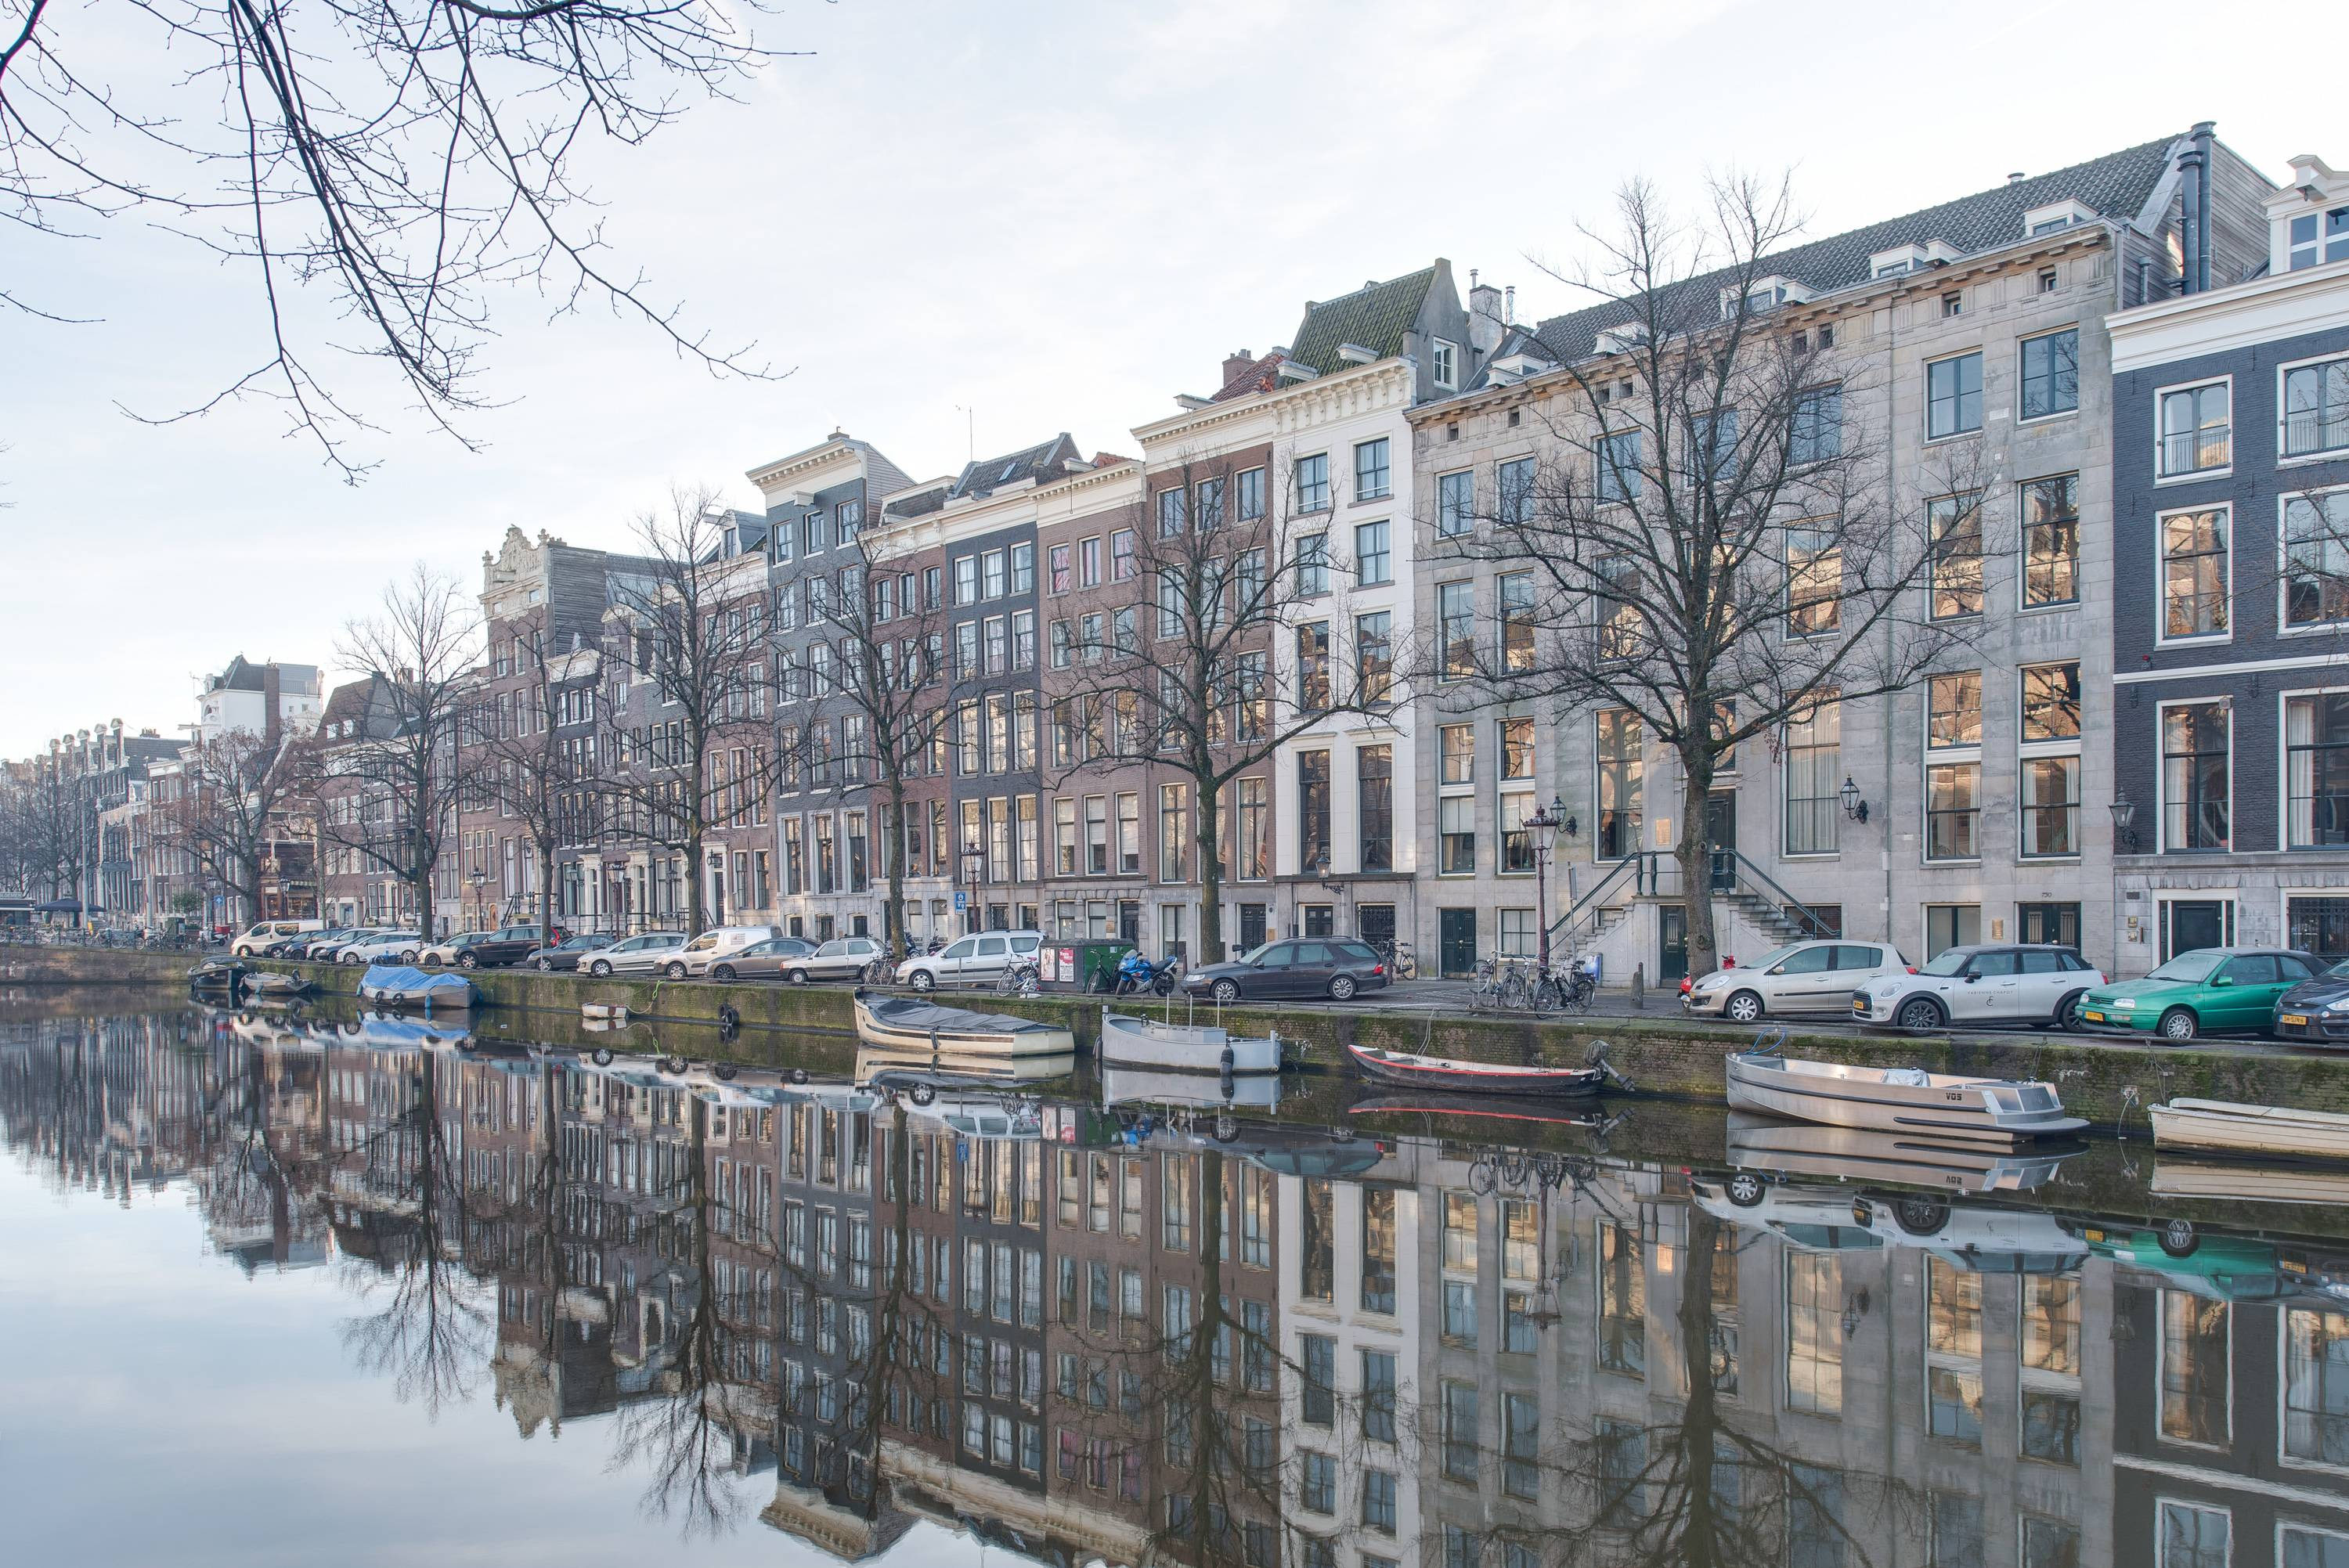 Photo of Keizersgracht, Amsterdam